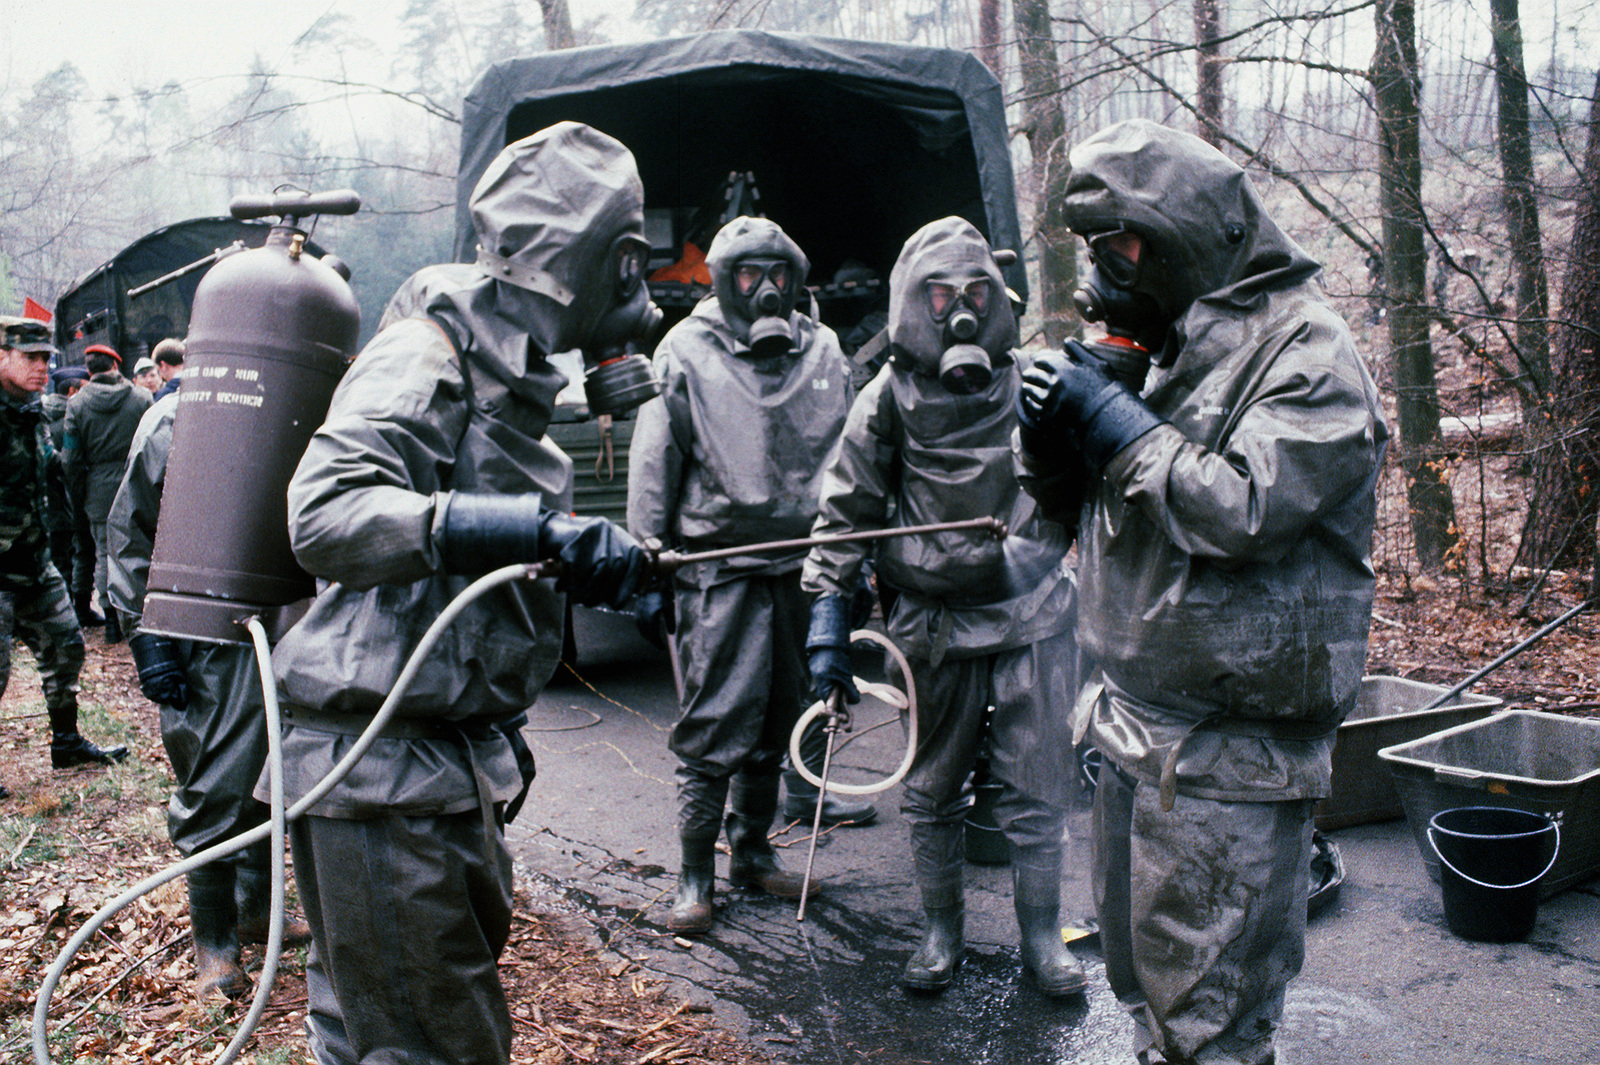 a-west-german-soldier-wearing-a-nuclear-biological-chemical-nbc-protective-d6bc3d-1600.jpg